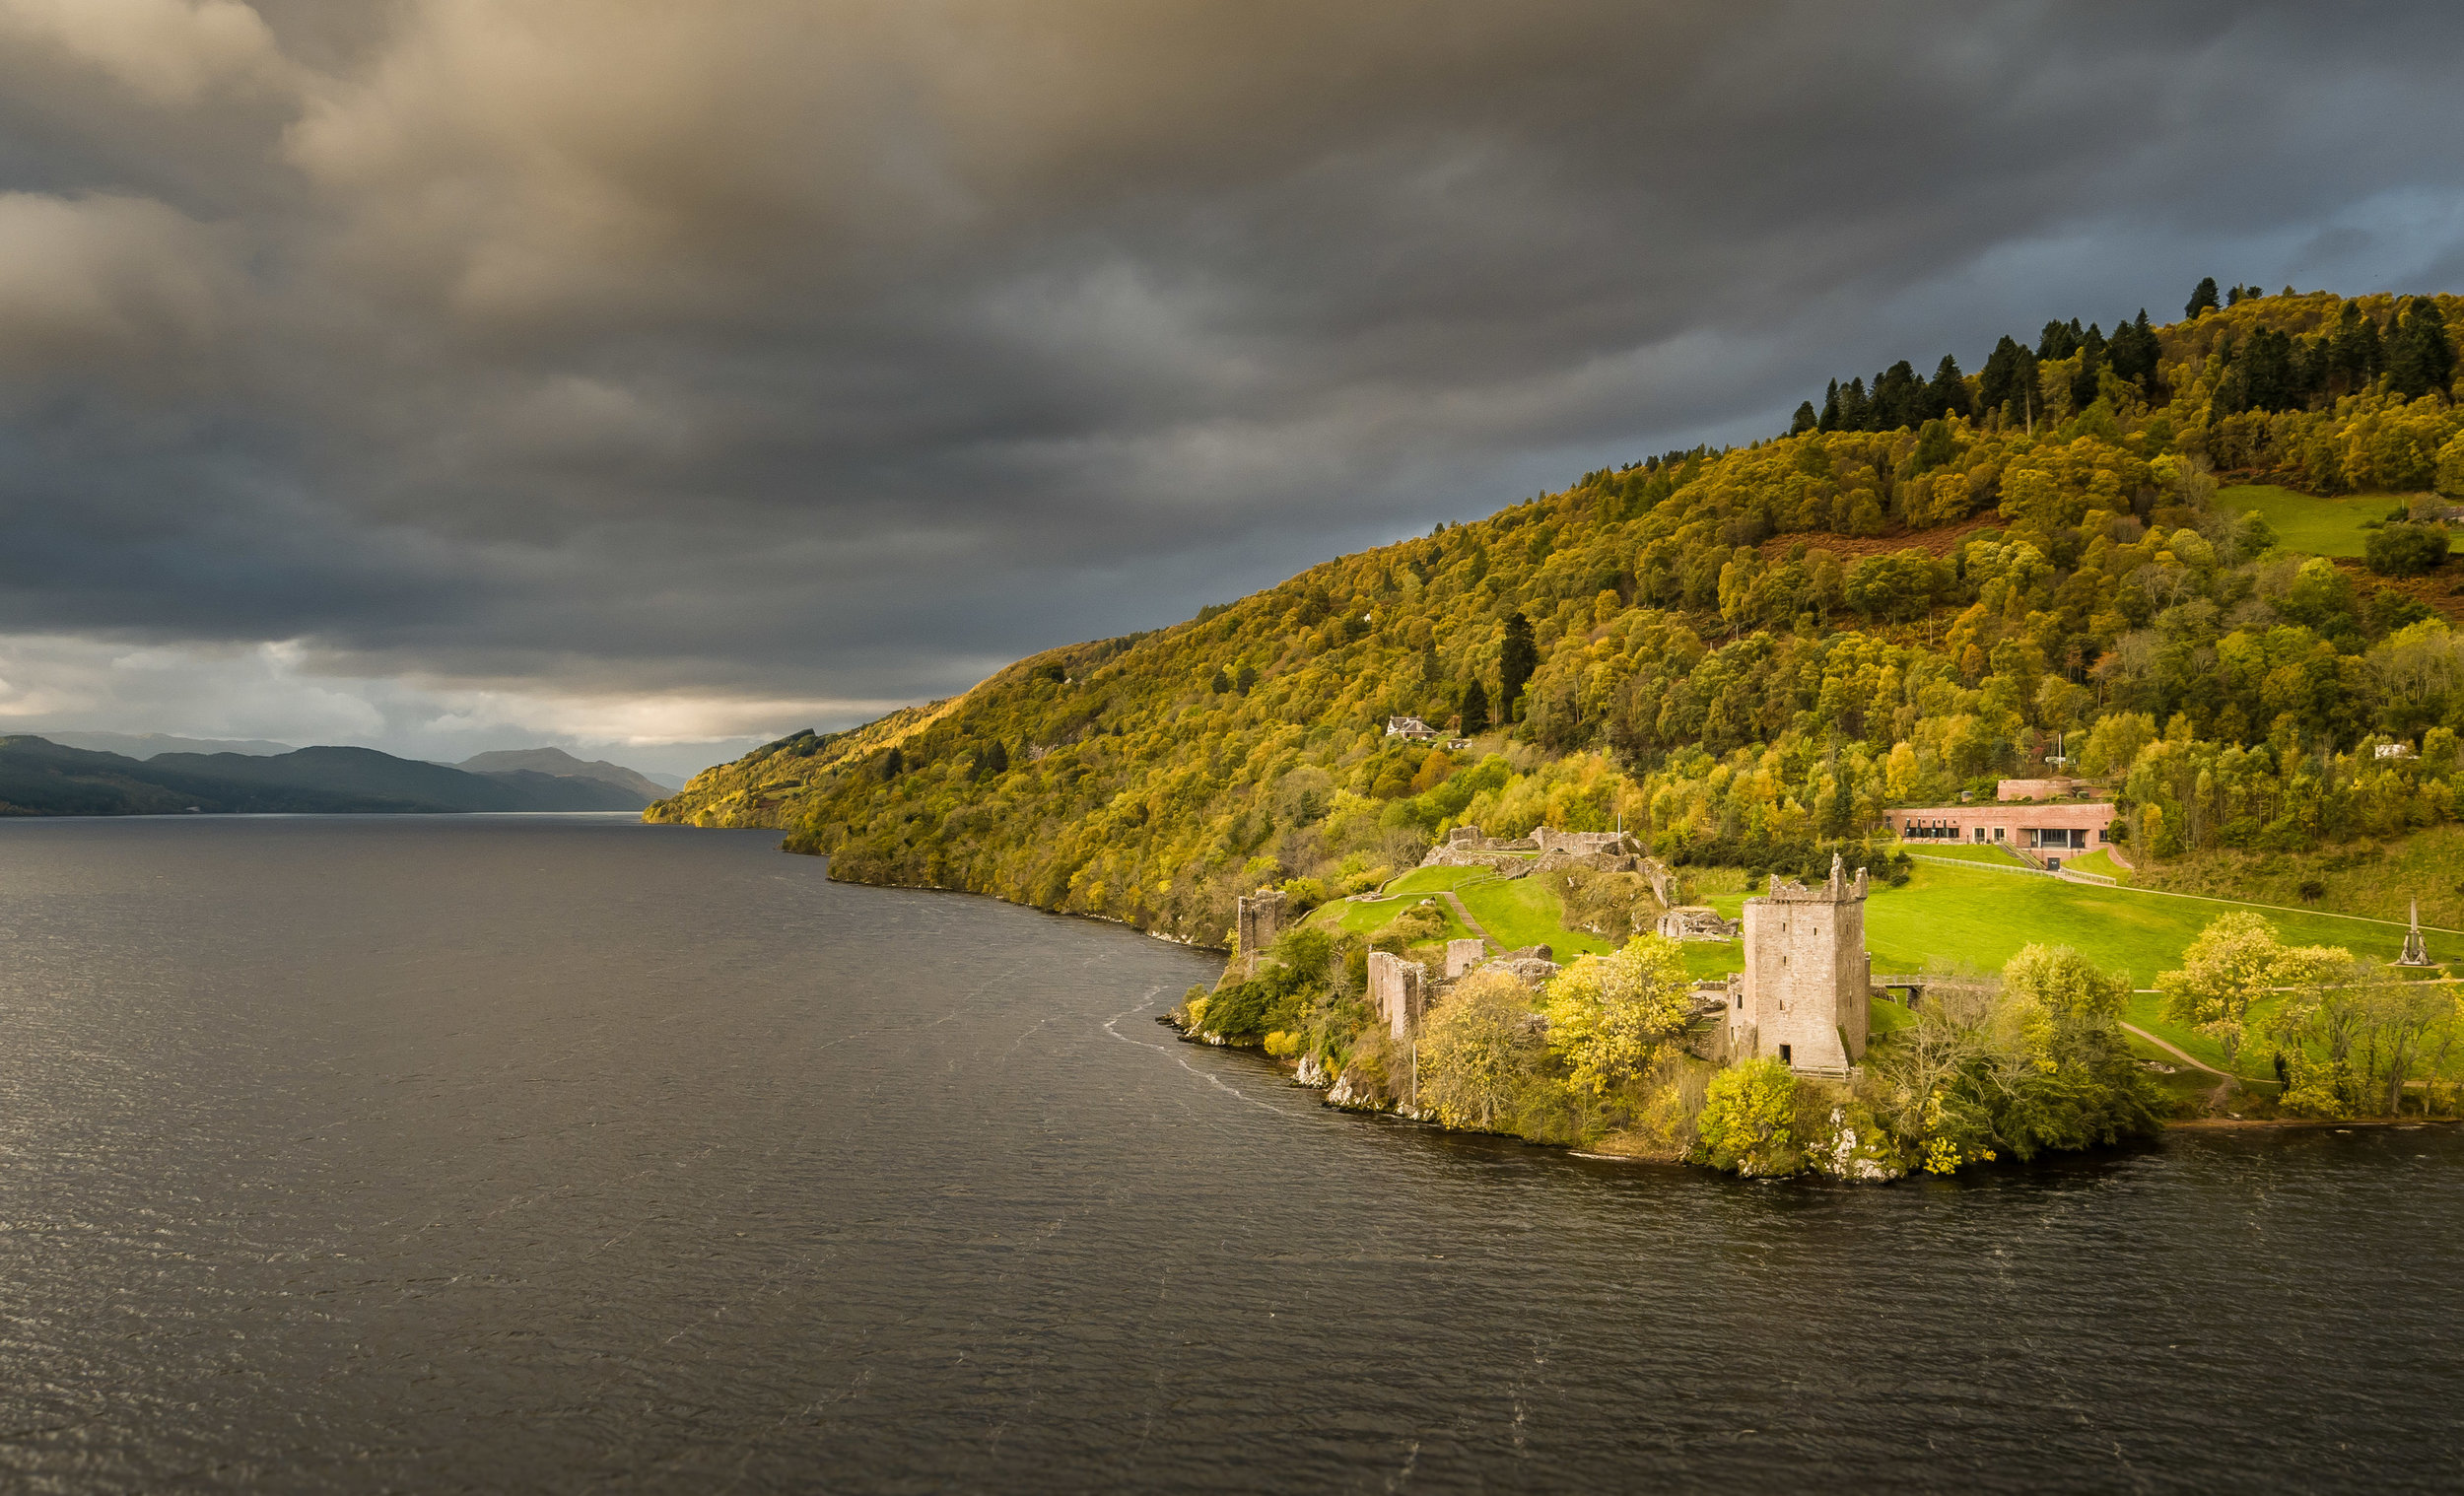 The Loch Ness Marathon takes place on October 6